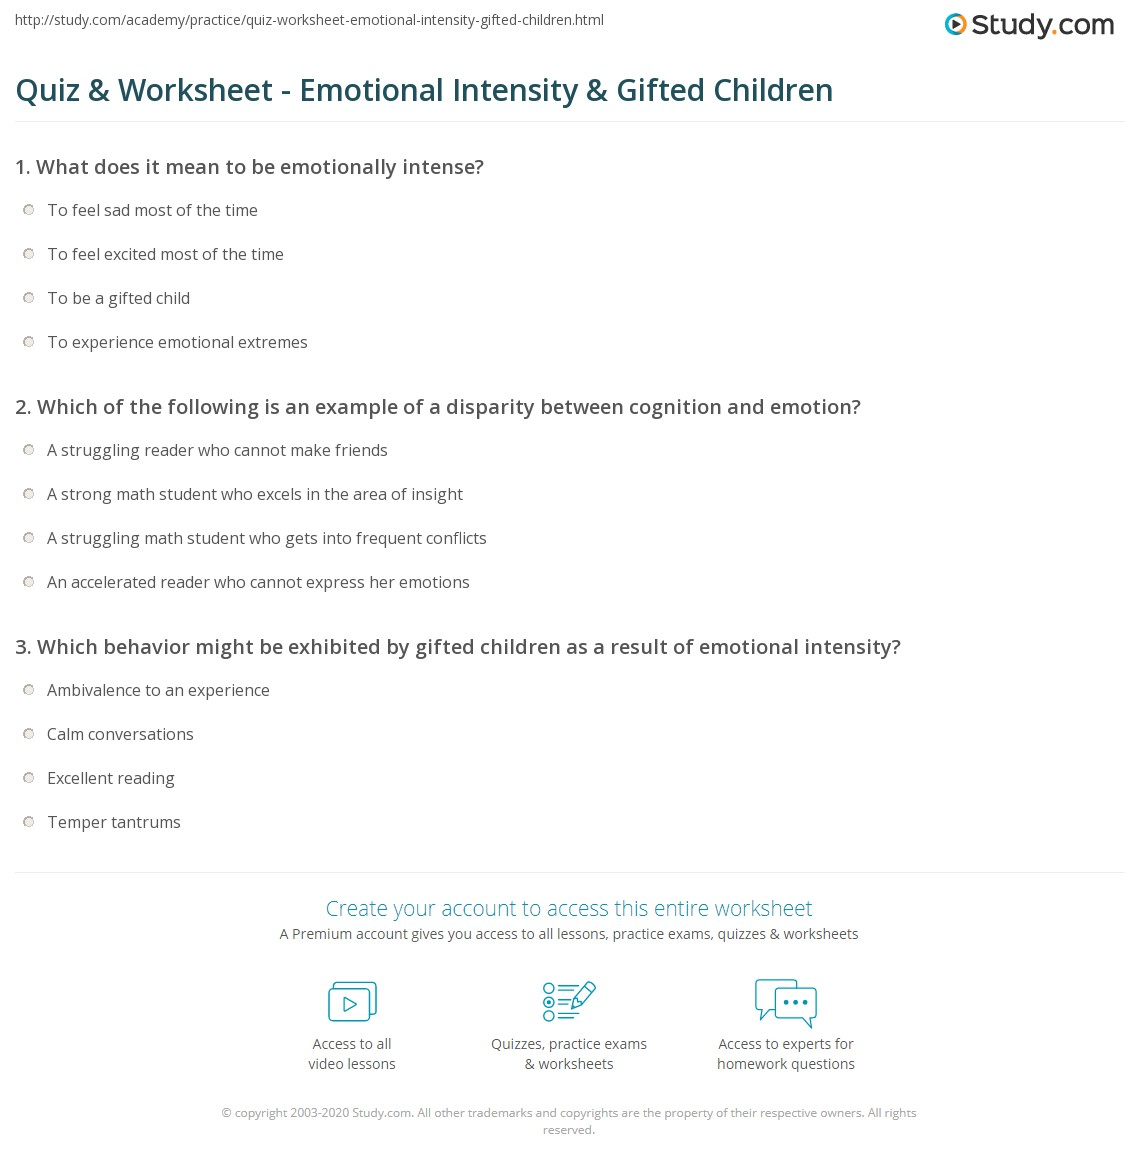 Quiz & Worksheet - Emotional Intensity & Gifted Children | Study.com